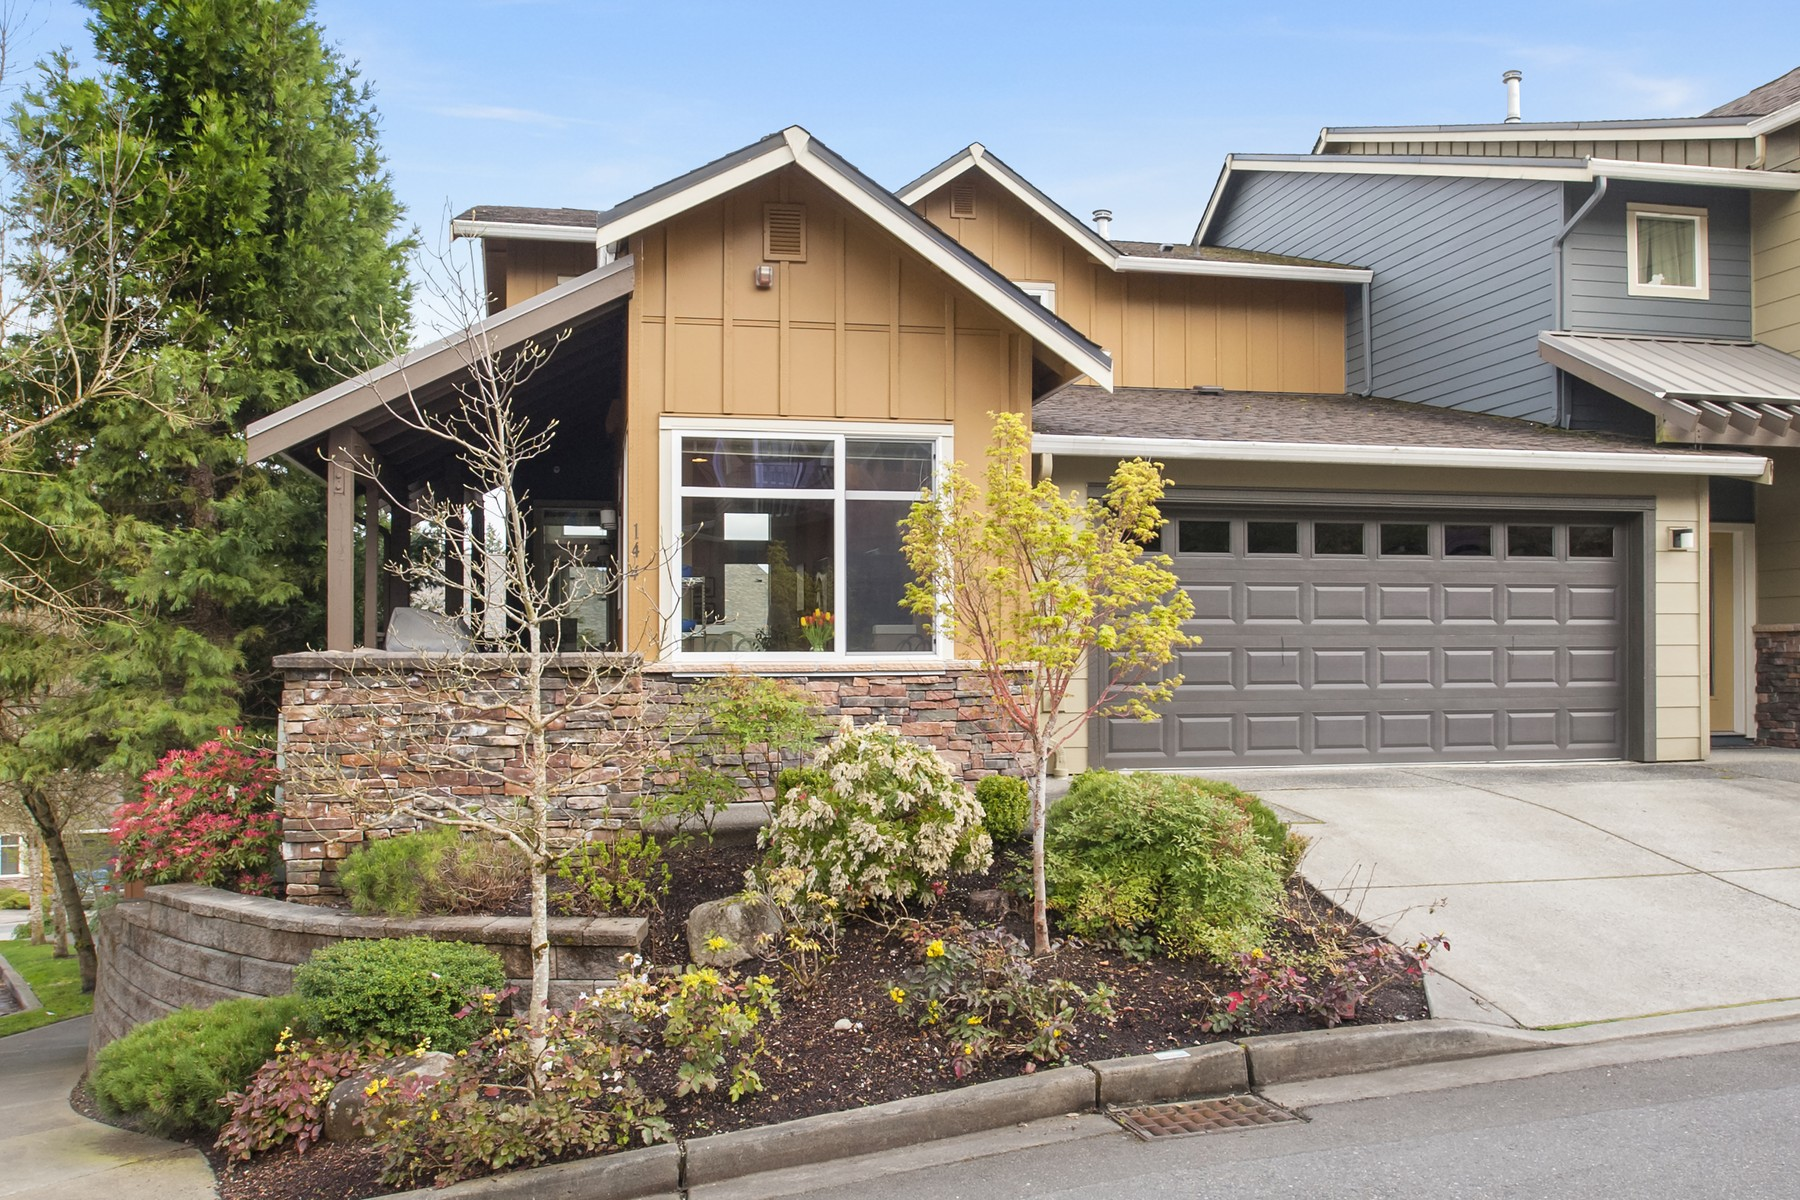 Townhouse for Sale at Talus Townhome 144 Sky Ridge Rd NW Talus, Issaquah, Washington, 98027 United States